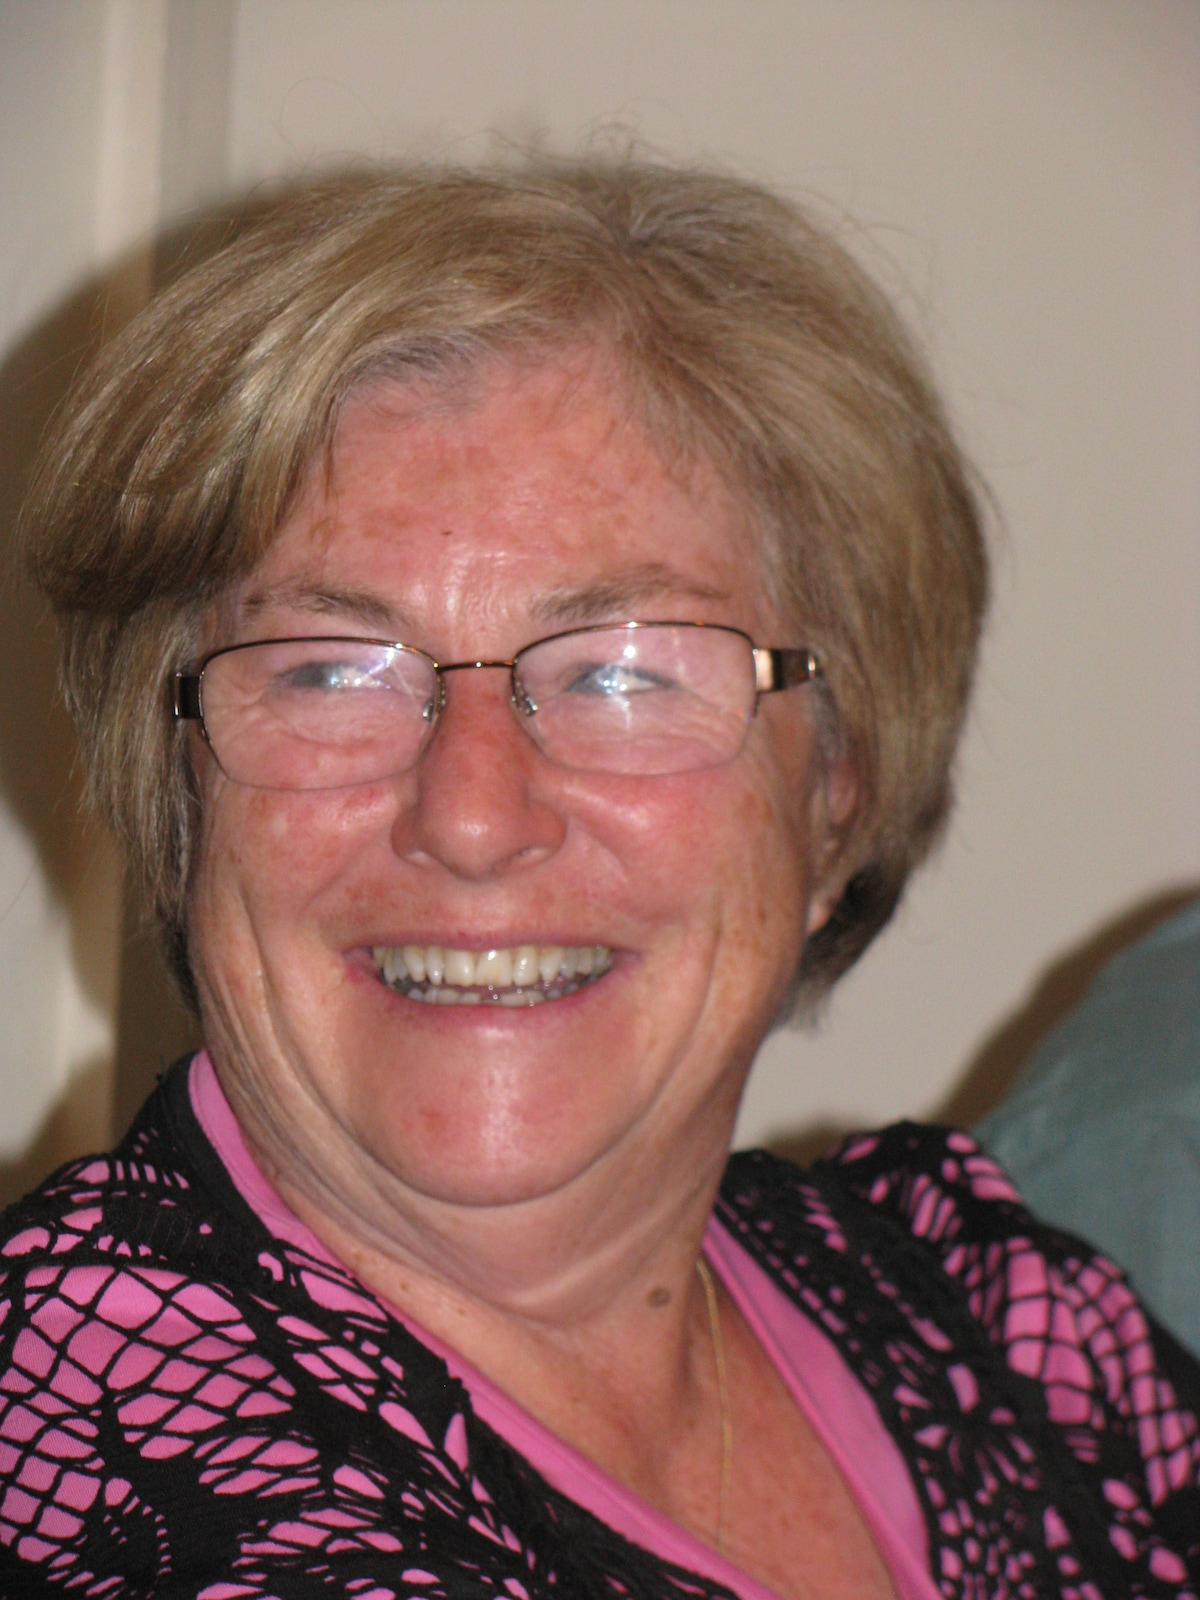 Pat From Guildford, United Kingdom